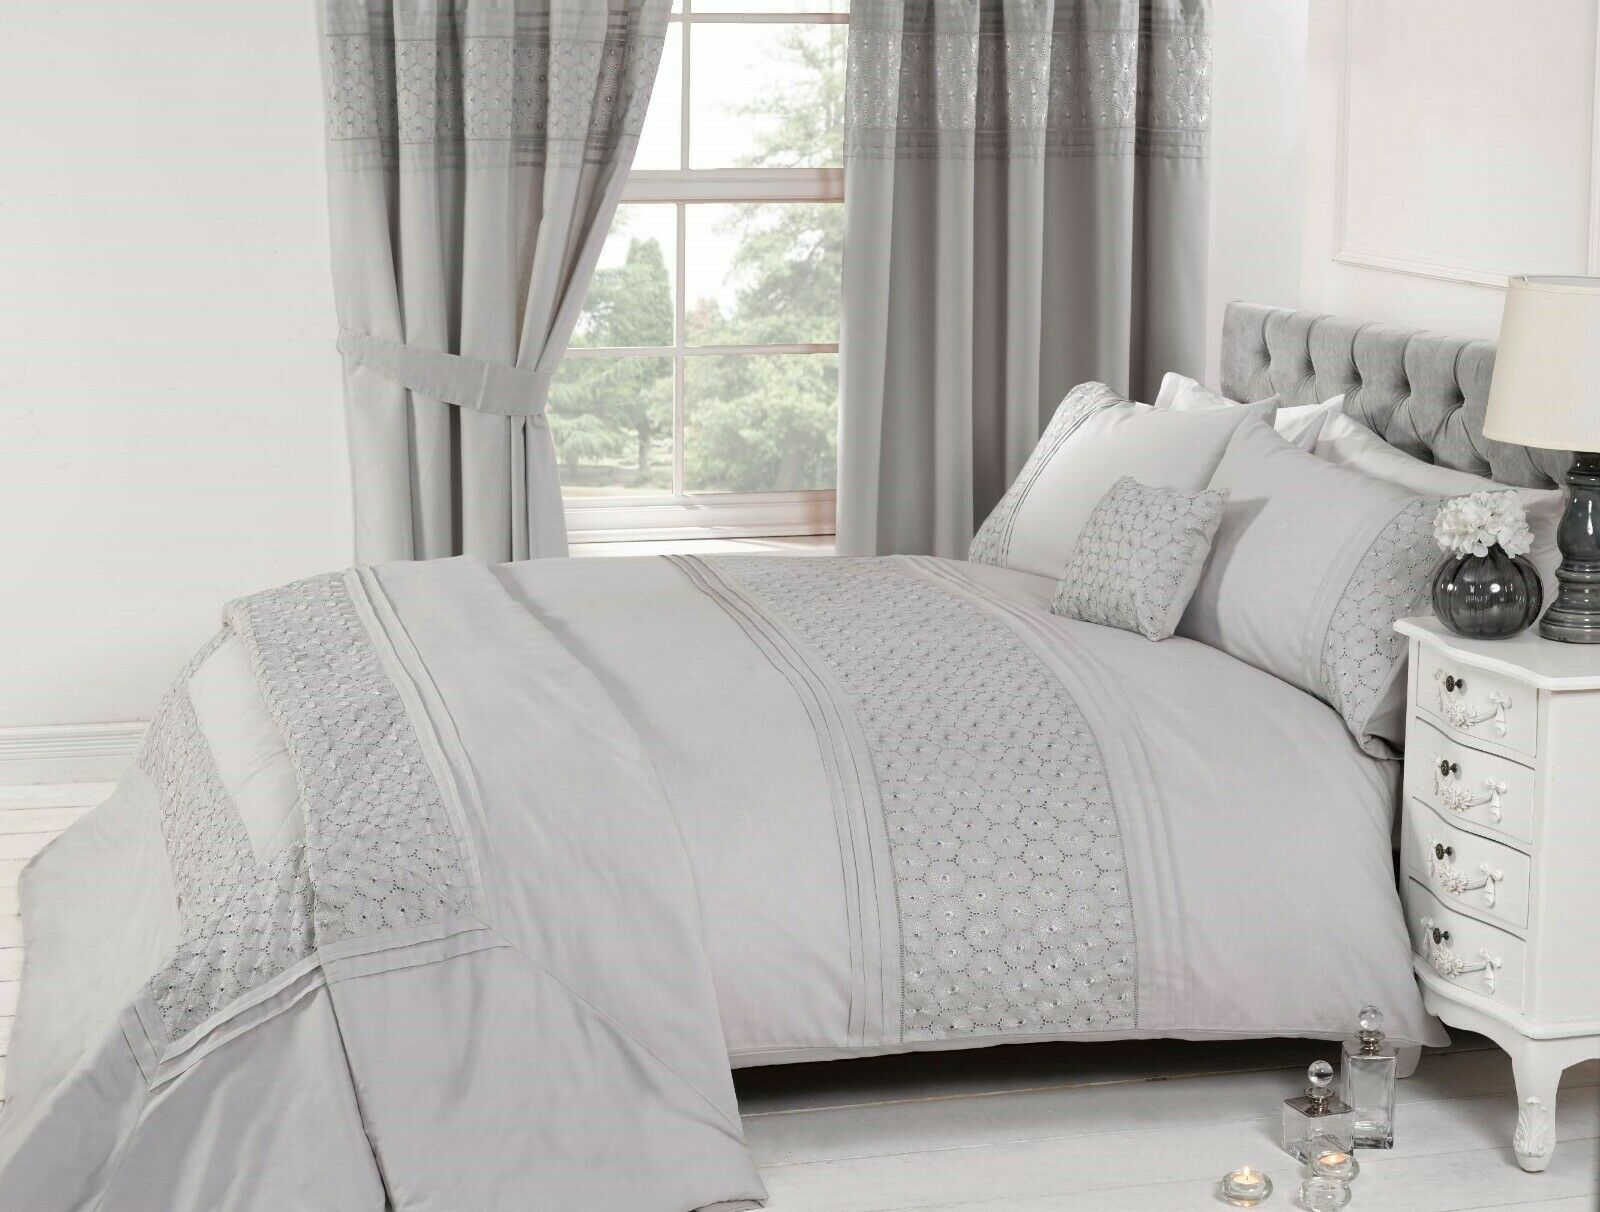 EVERDEAN FLORAL BLUSH PINK DUVET COVER /& PILLOWCASE SET ELEGANT DOUBLE